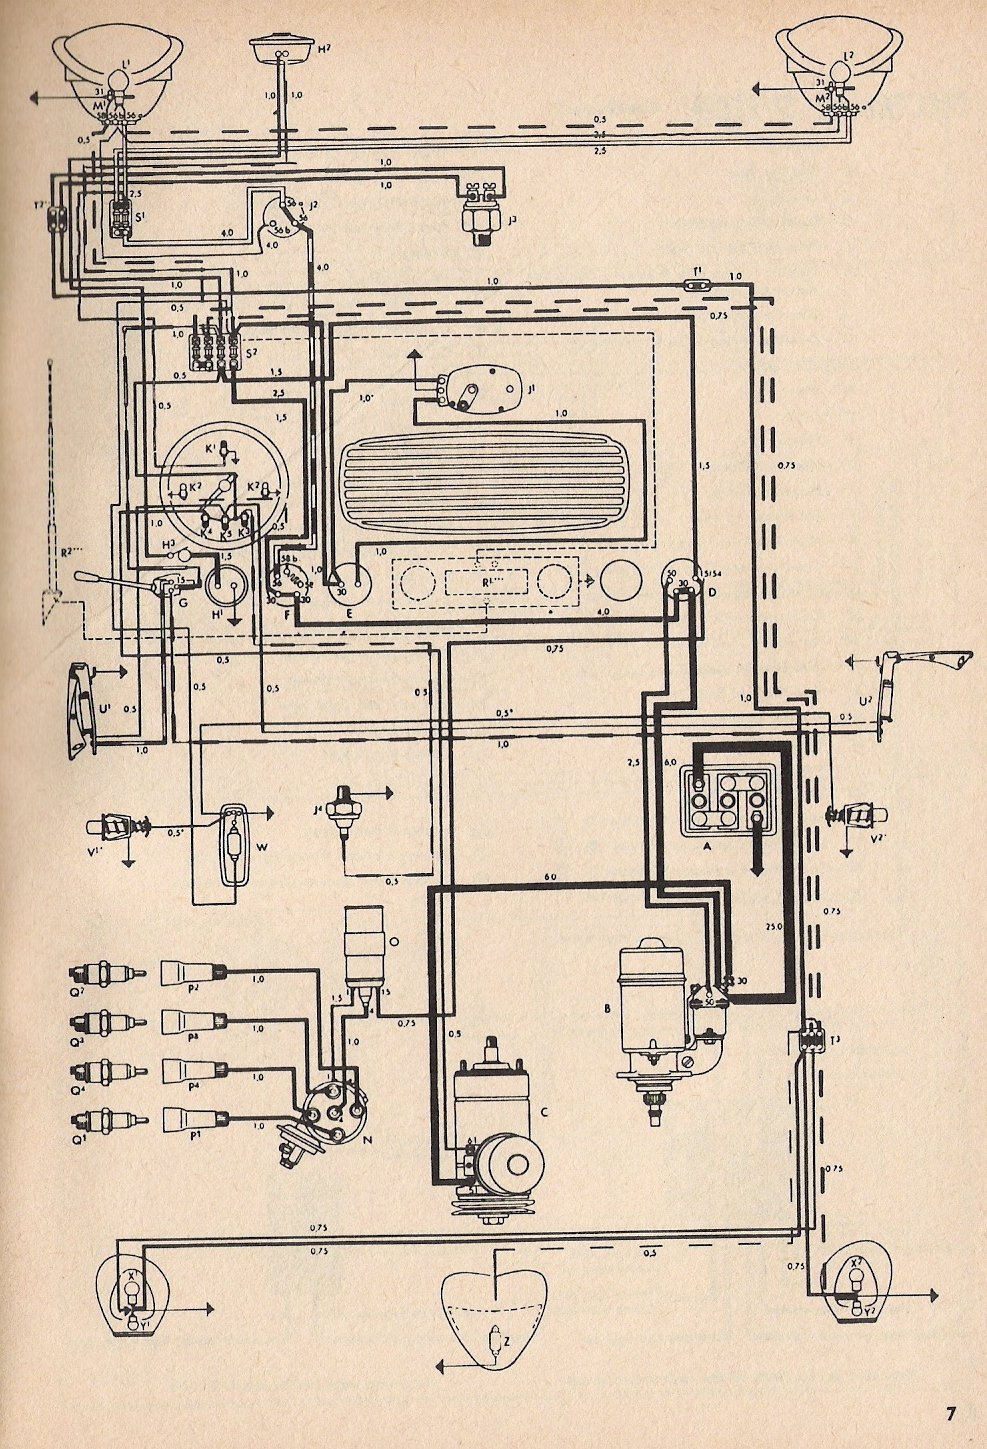 thesamba com type 1 wiring diagrams rh thesamba com 2000 vw beetle wiring schematics 1970 vw beetle wiring schematic